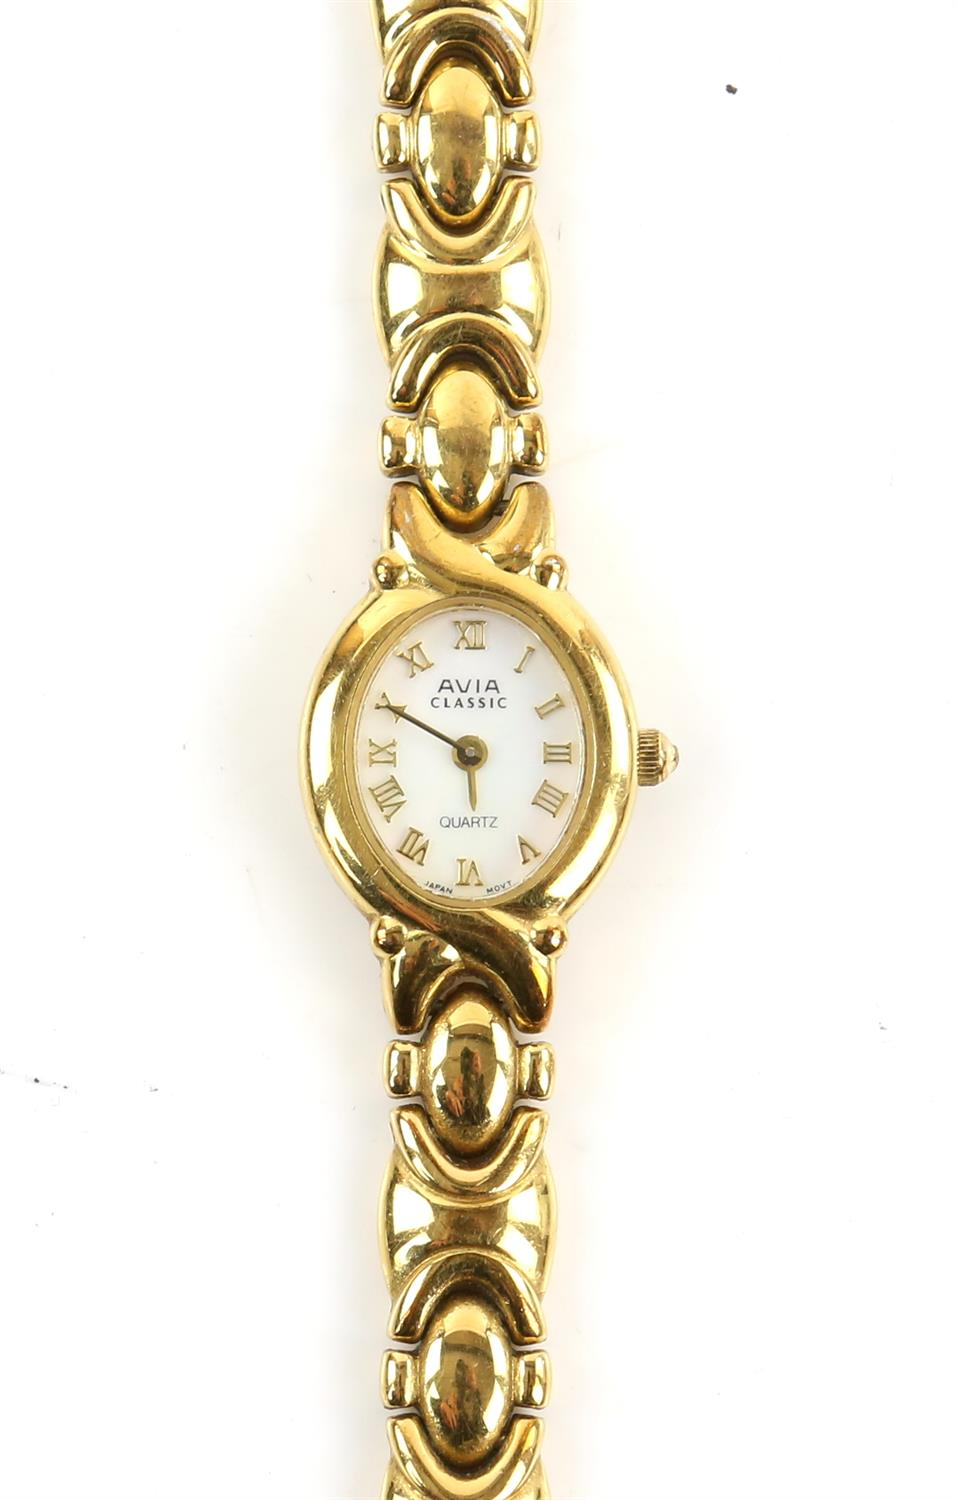 Raymond Weil, A Gentleman's reference 6549 dress watch with white enamel dial, baton hour markers, - Image 7 of 11